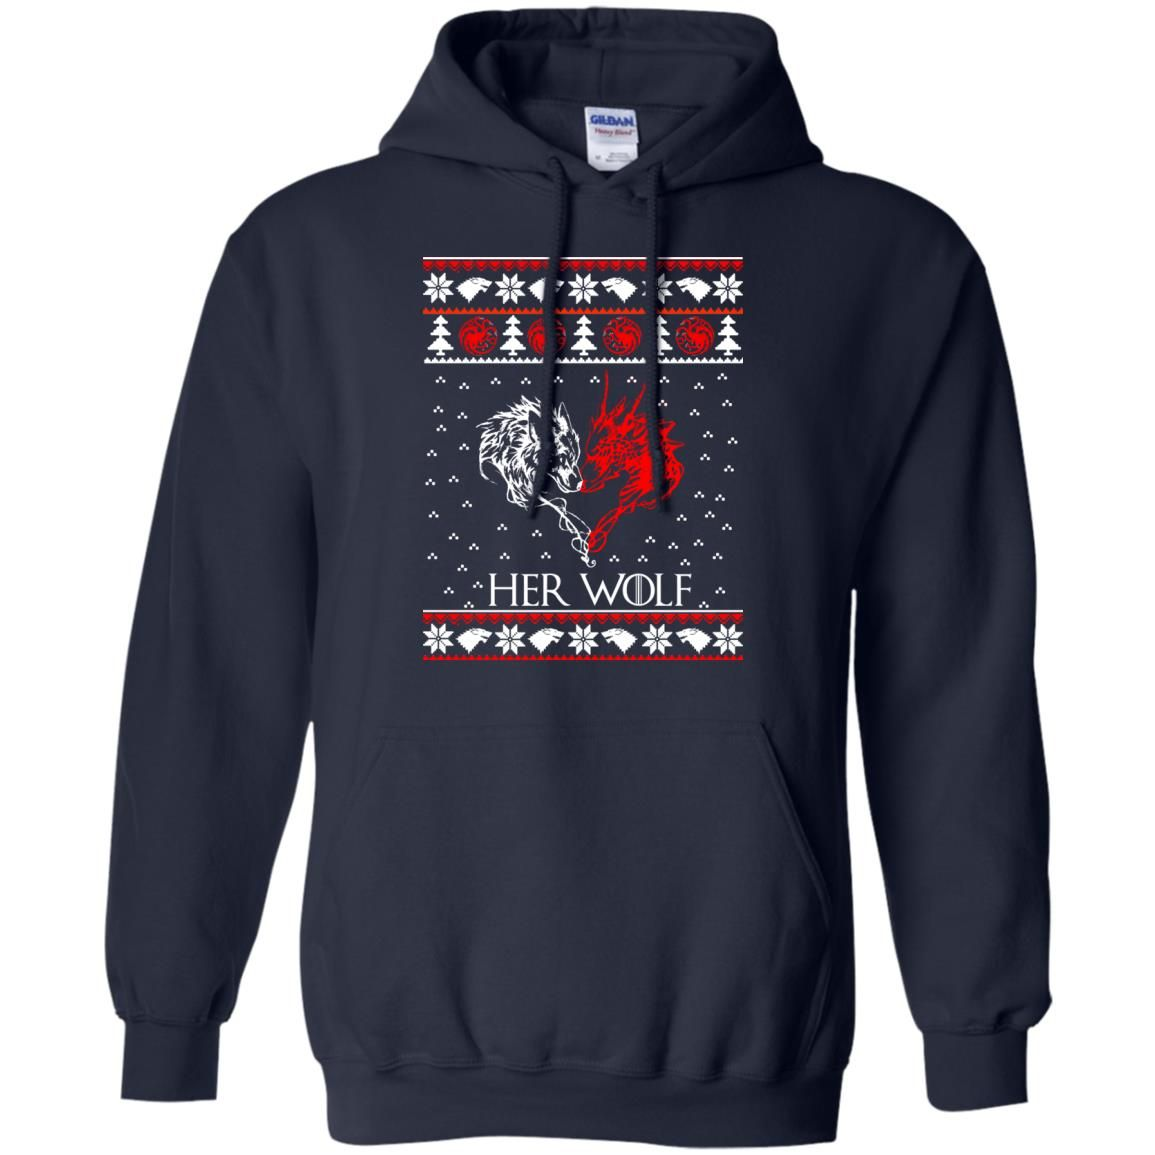 image 795 - Game of Thrones: Her Wolf Ugly Christmas Sweater, hoodie, shirt